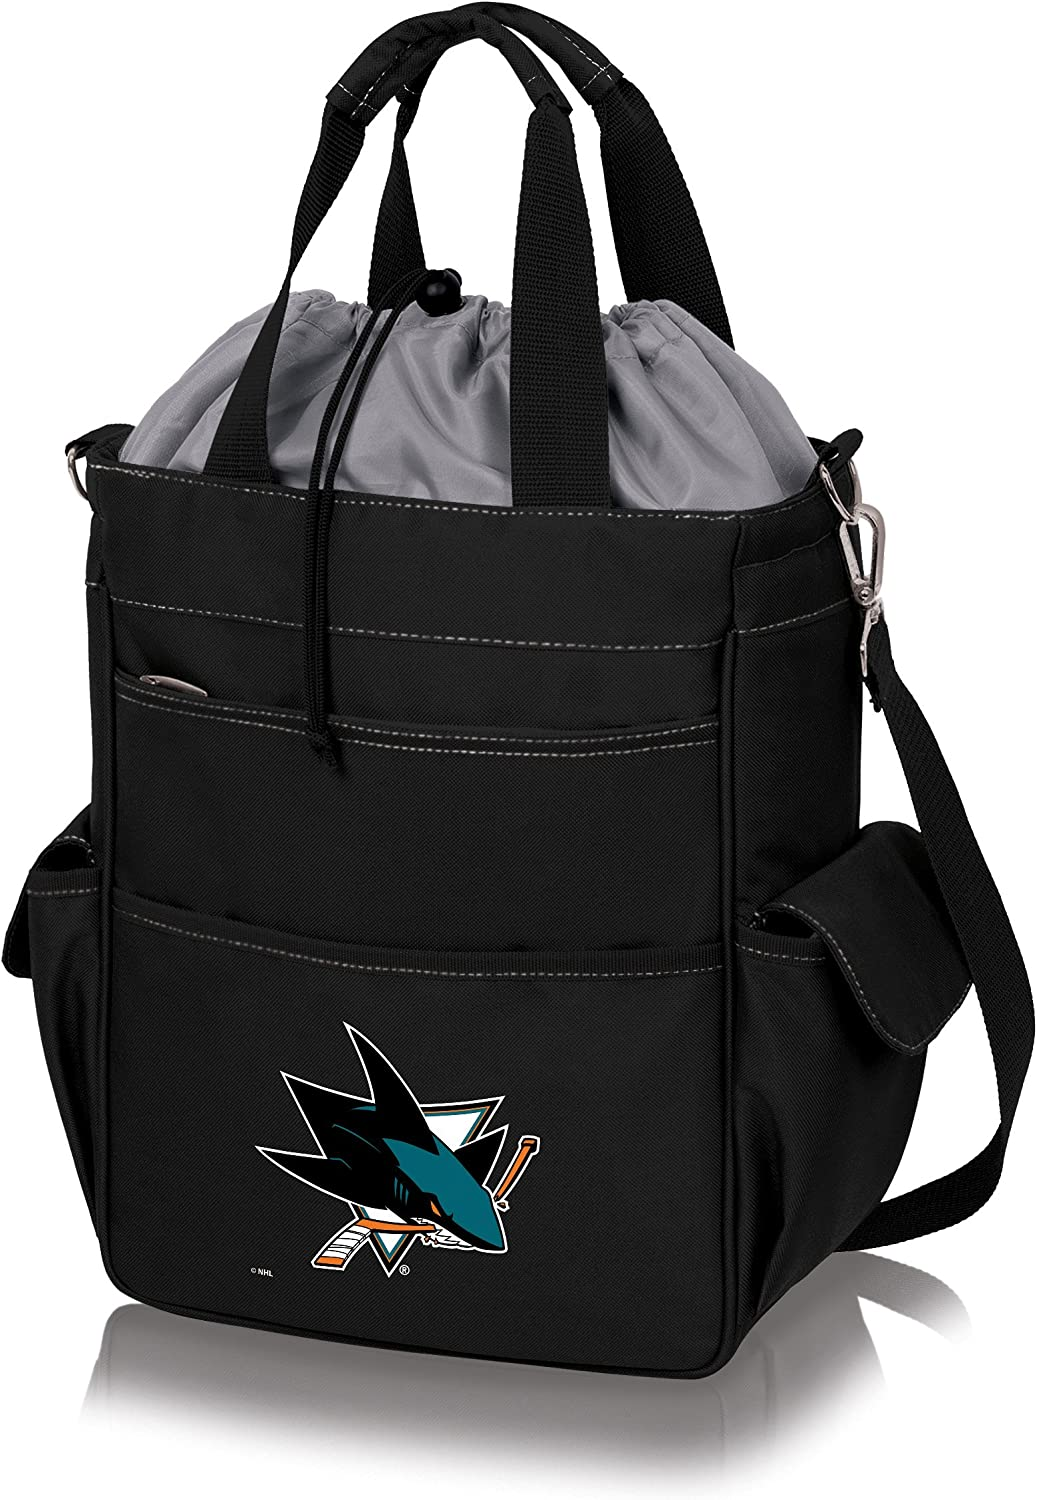 PICNIC TIME NHL San Jose Sharks Insulated Activo Tote Black